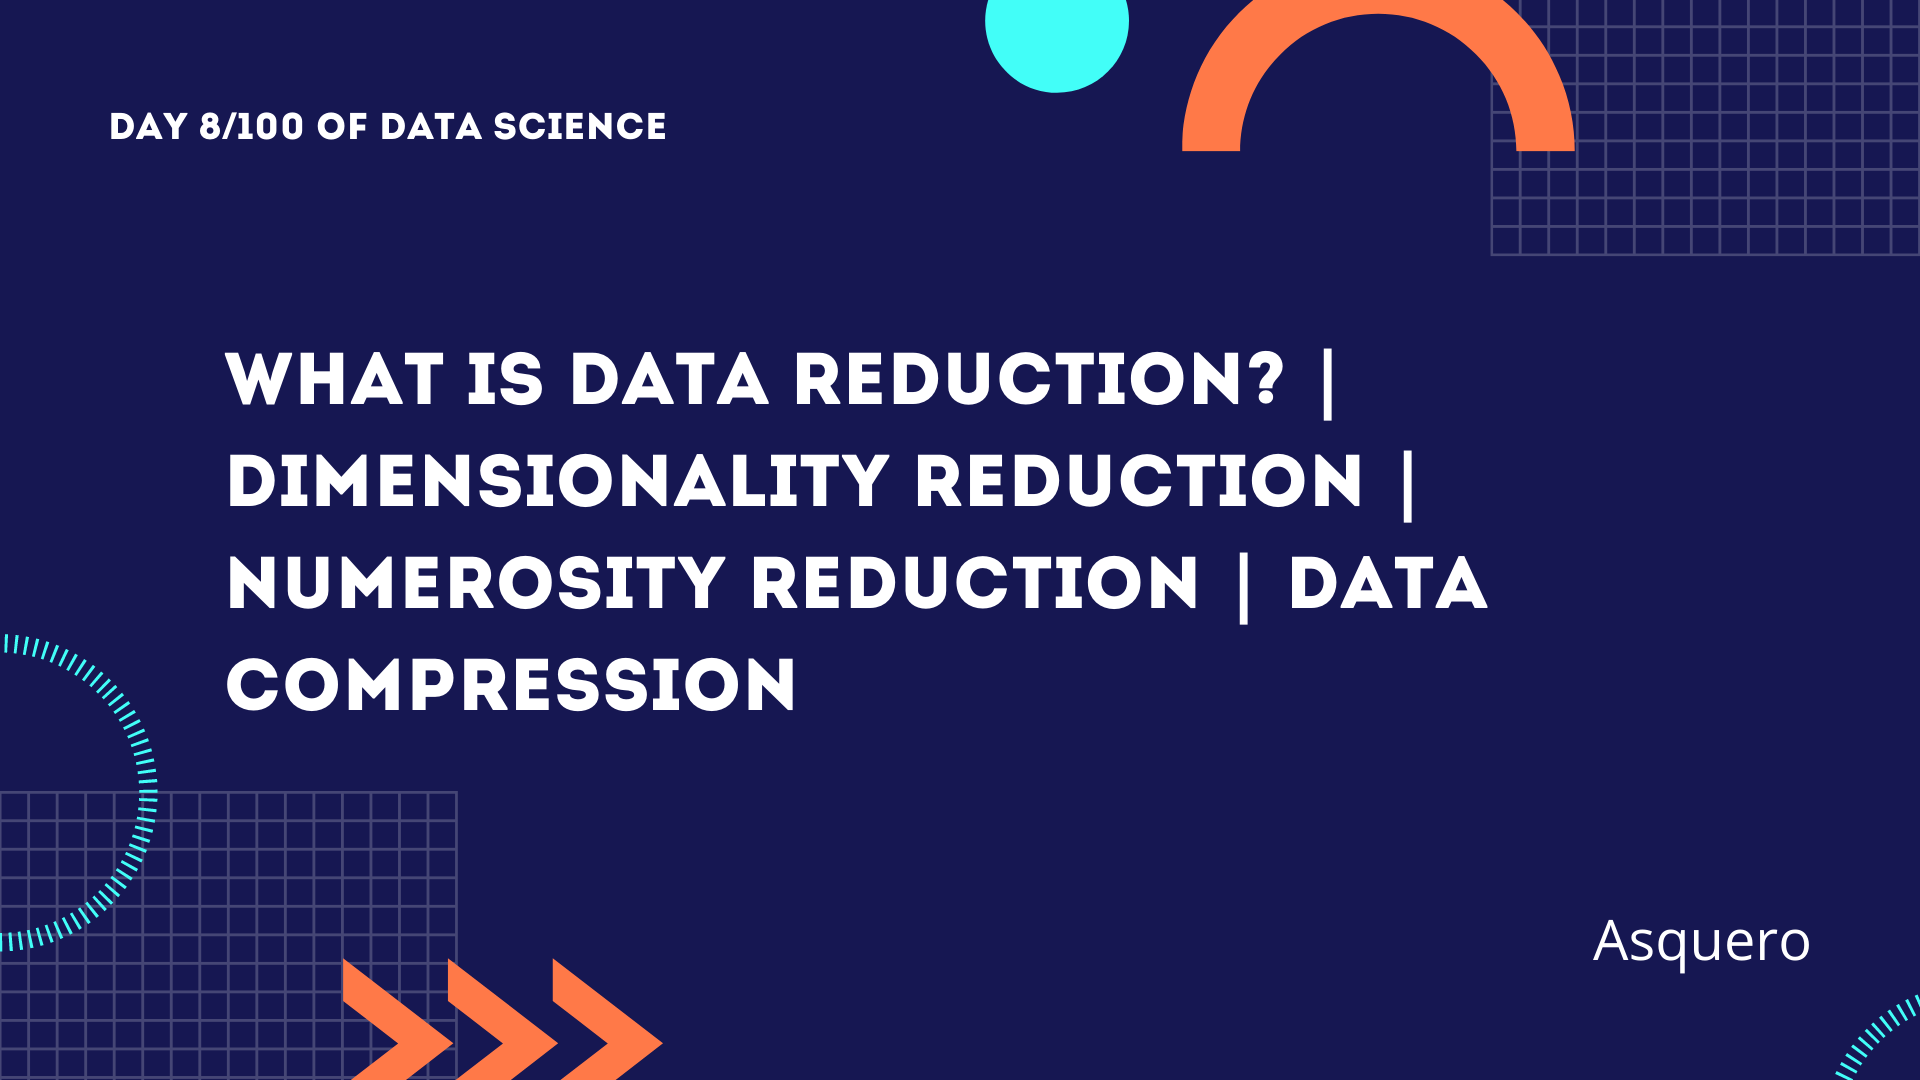 What is Data Reduction? | Dimensionality Reduction | Numerosity Reduction | Data Compression